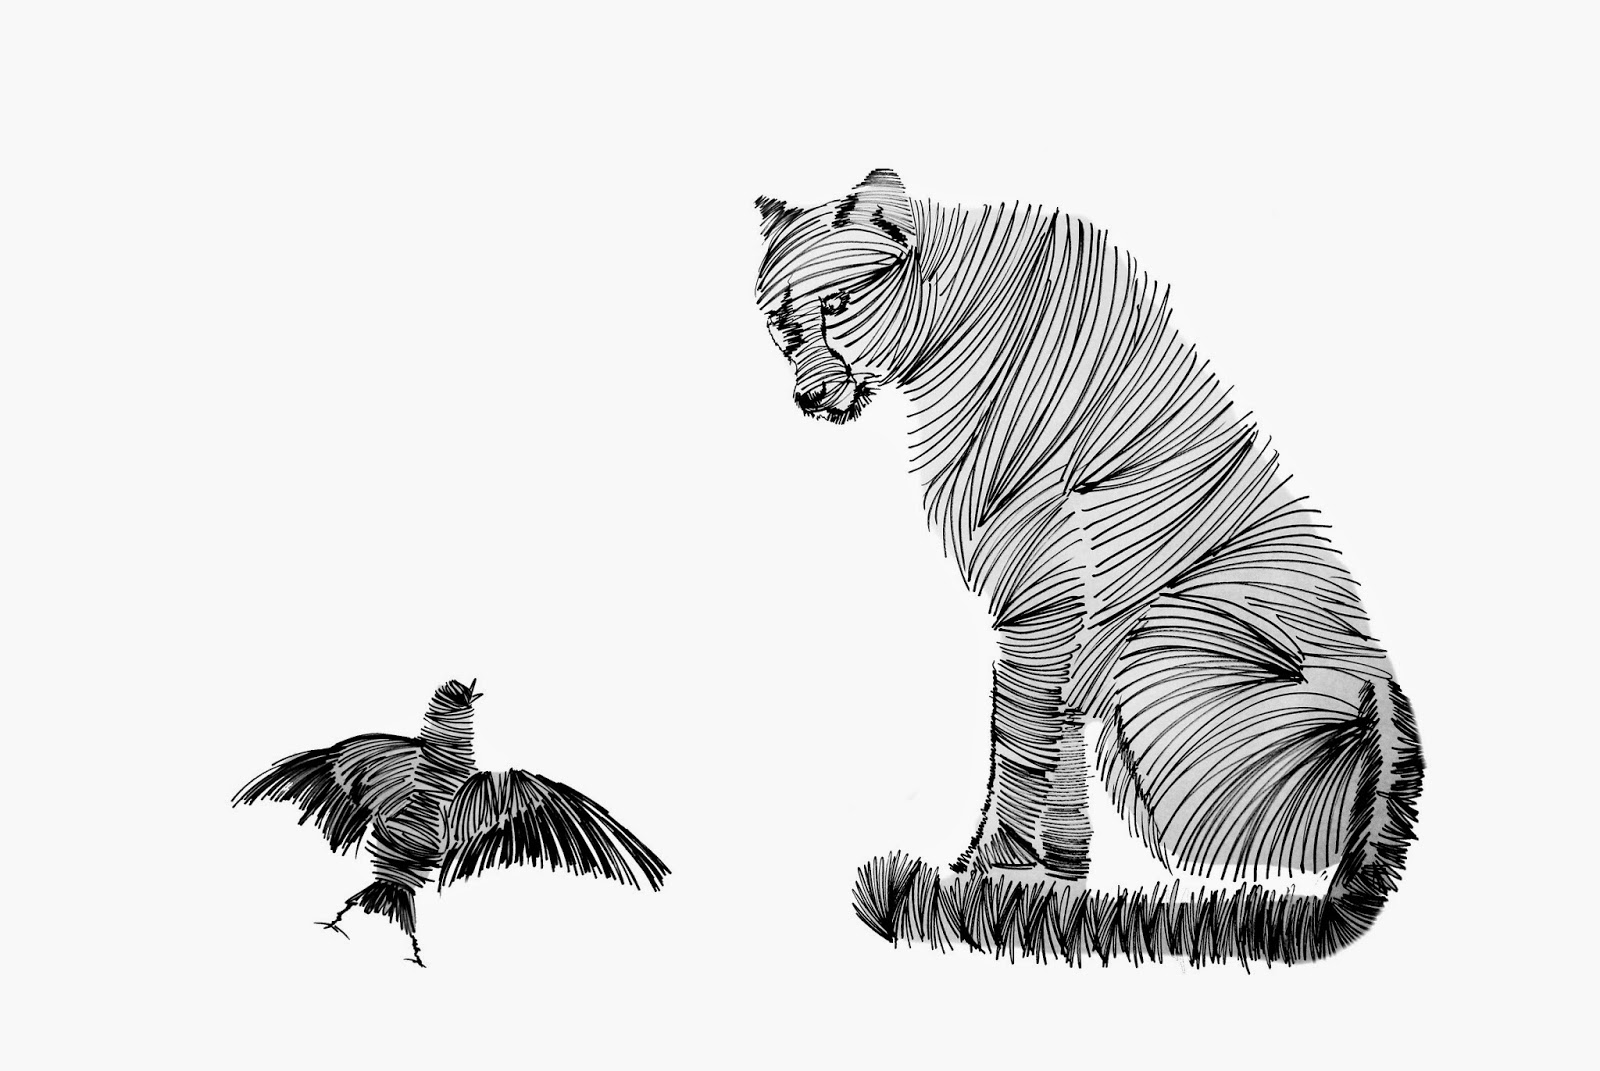 Line Drawing Jaguar : Project holy cow new york by mr caution artist singh drawings